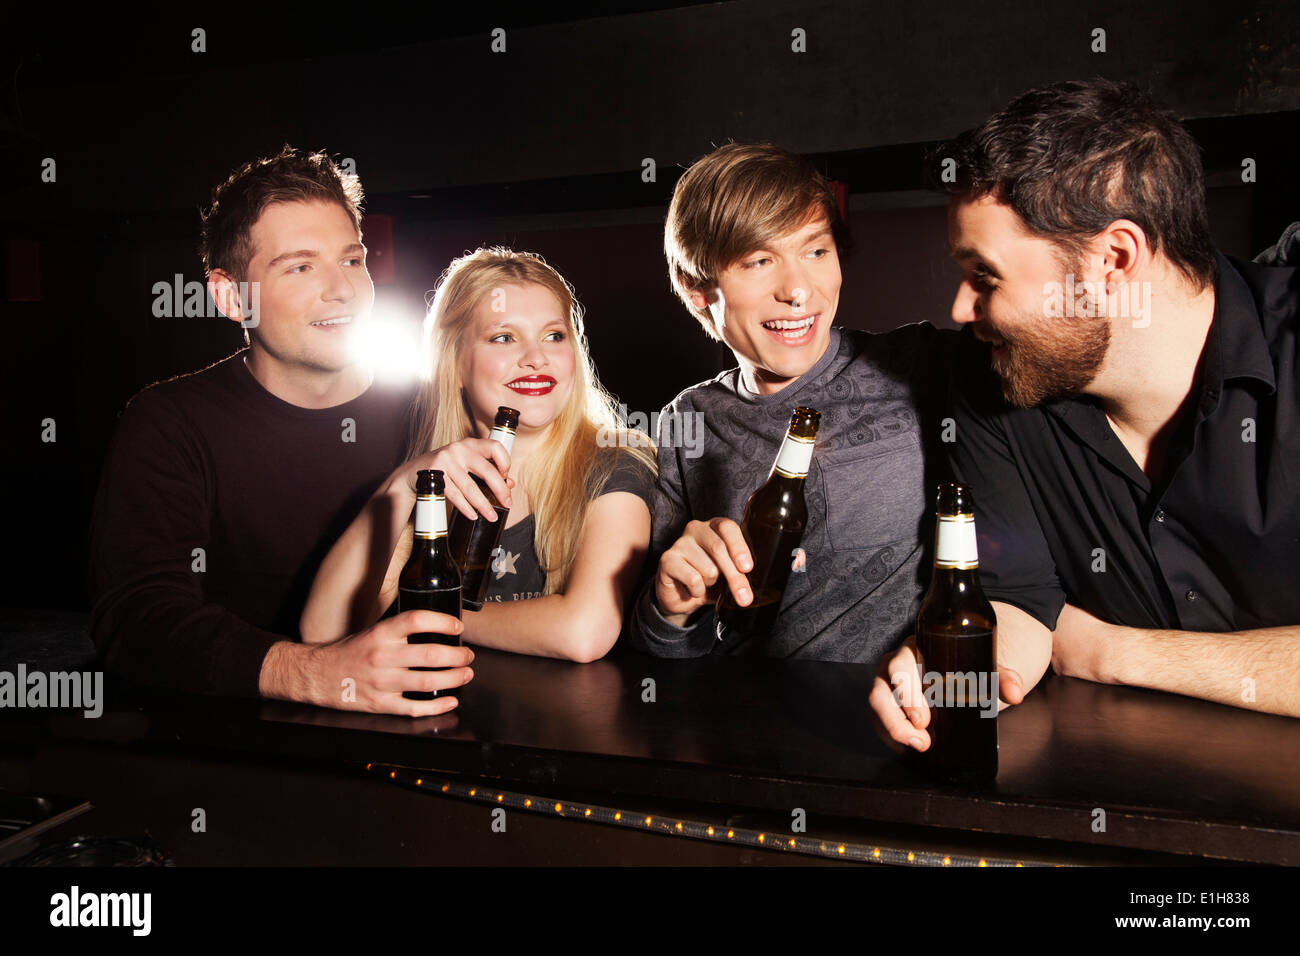 Four friends drinking bottled beer in nightclub - Stock Image